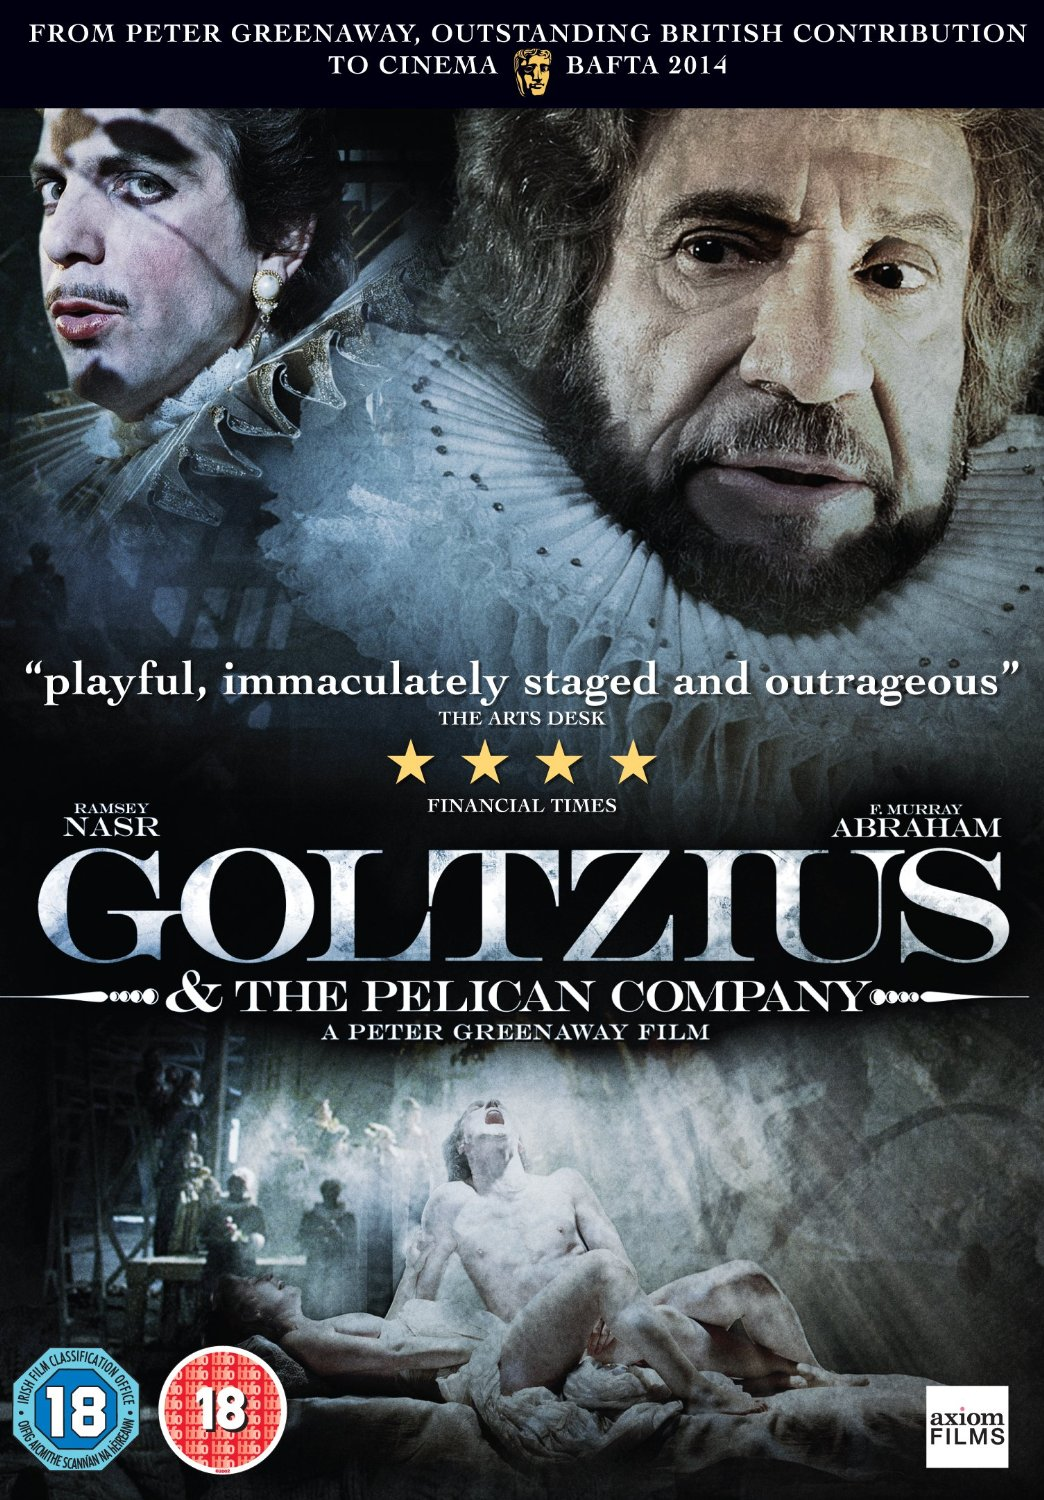 Buy Goltzius & the Pelican Company